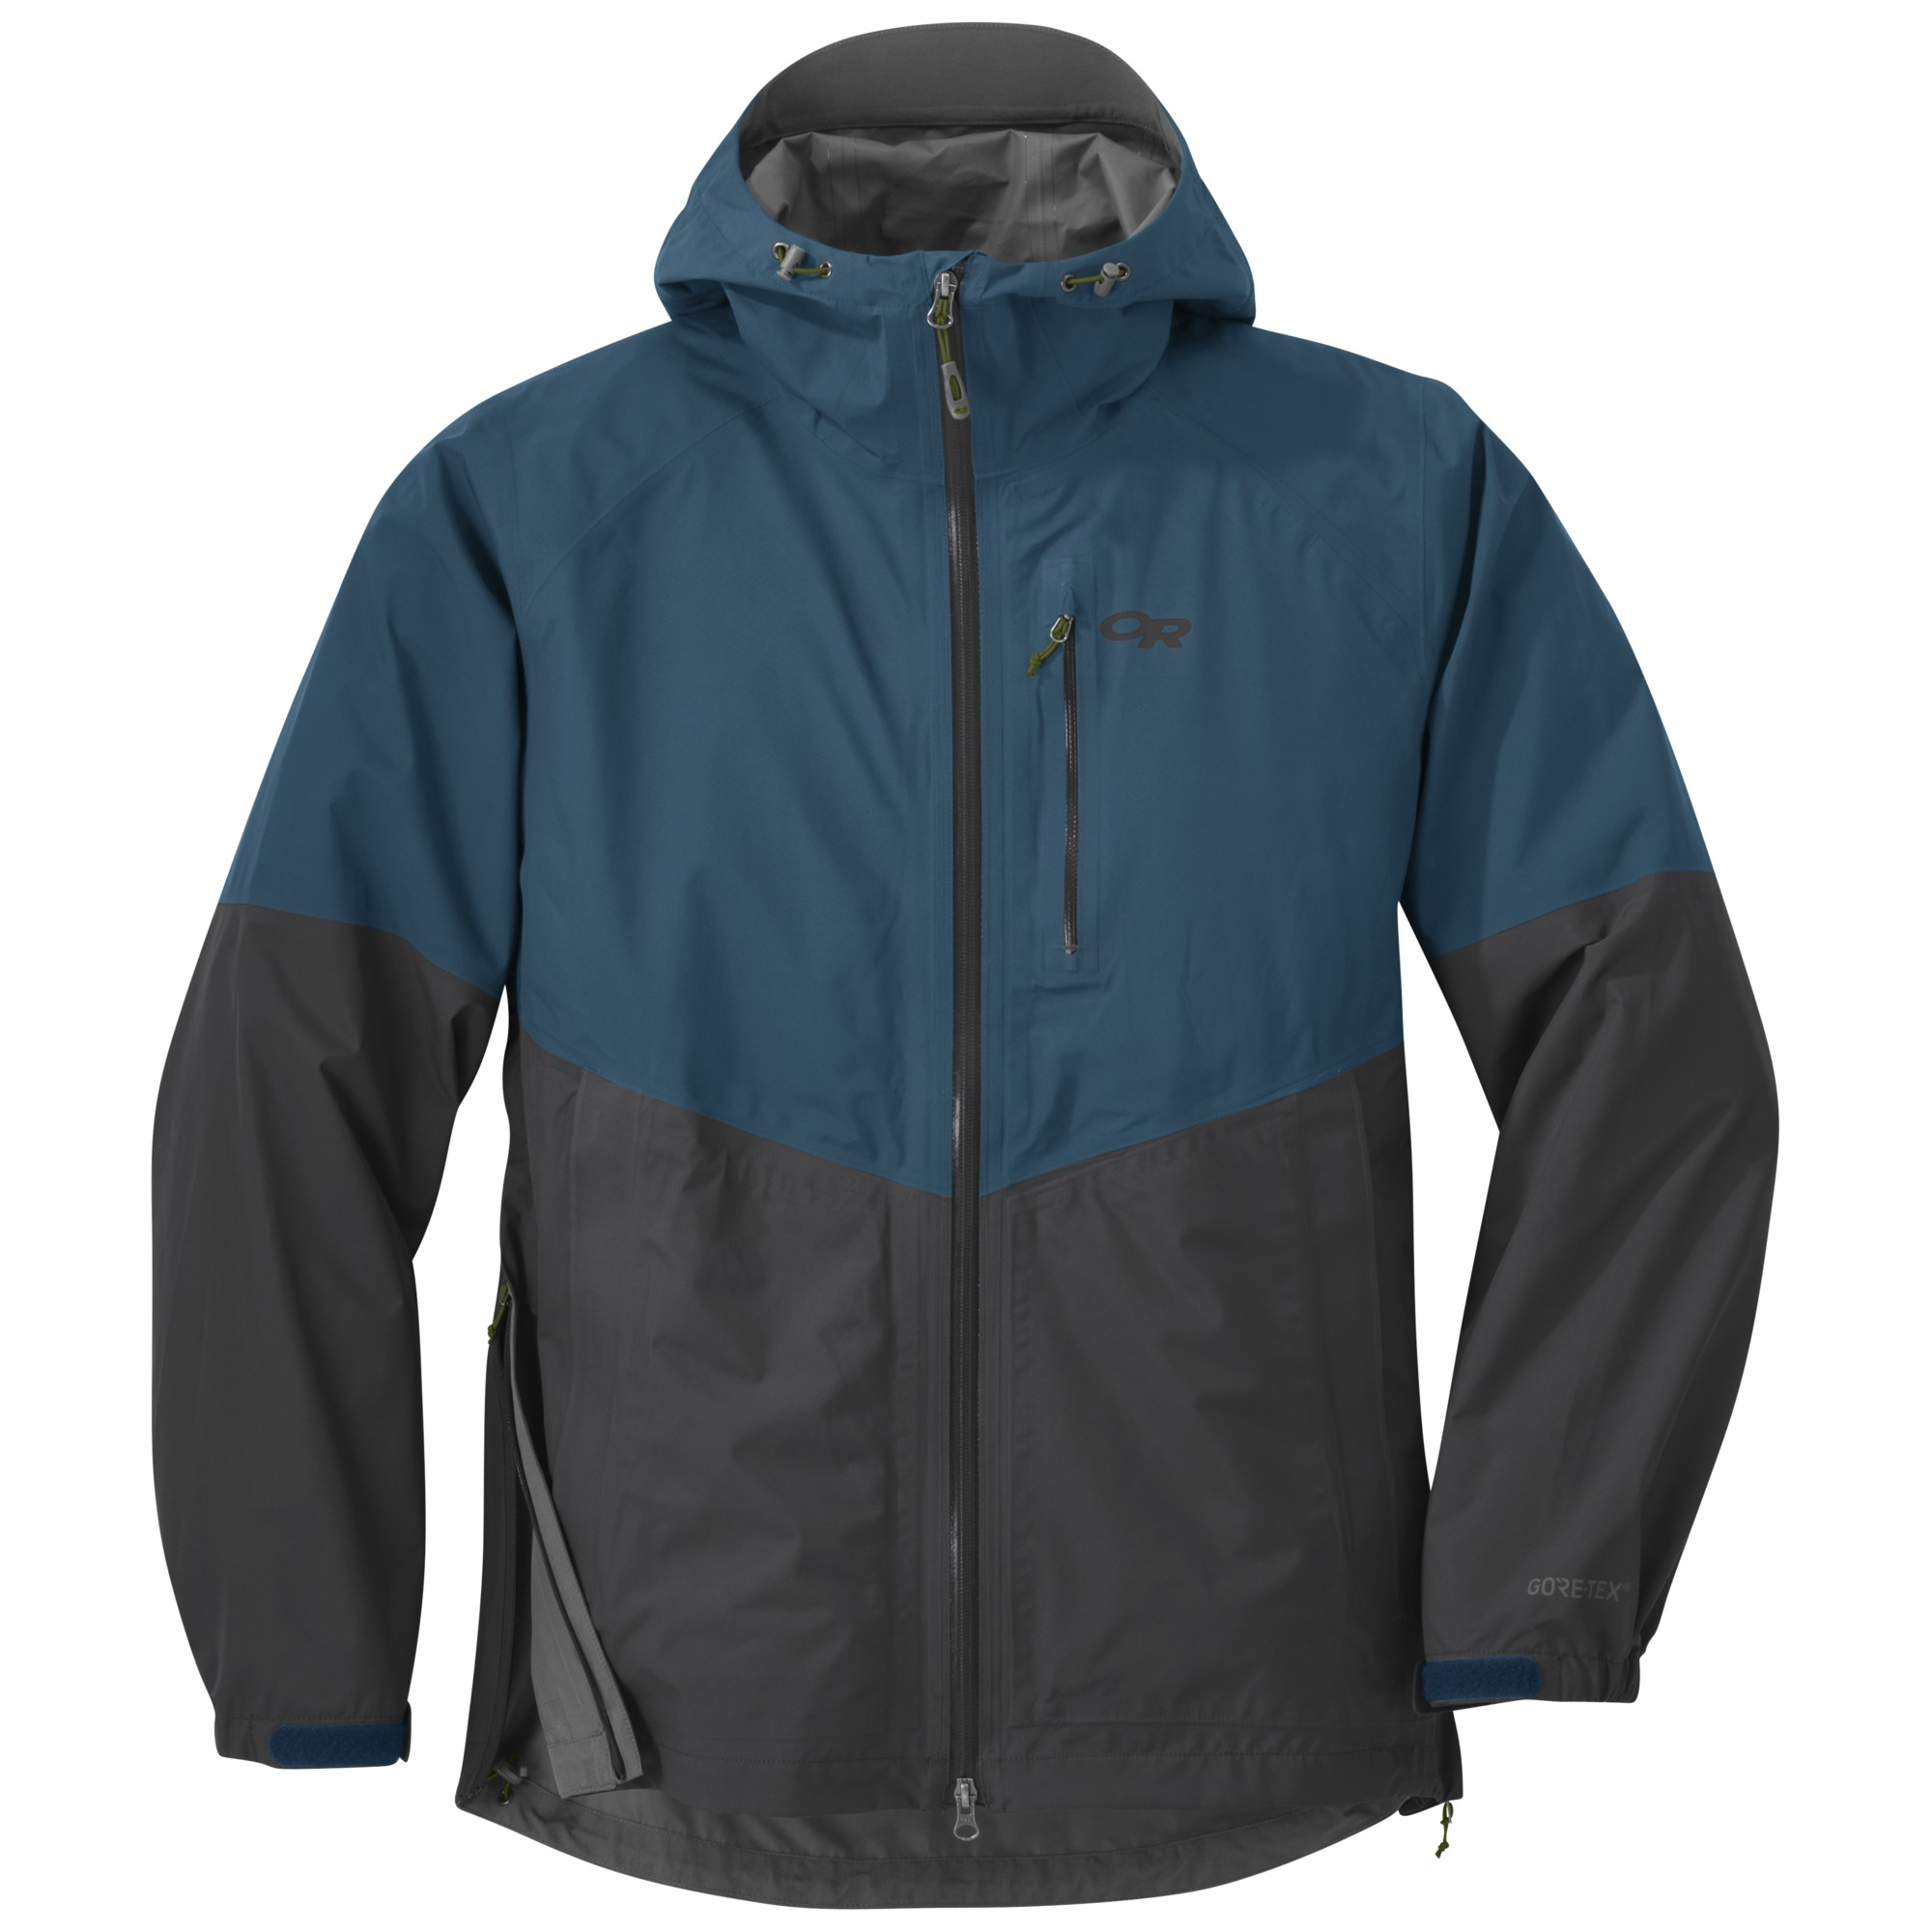 73b188f3e Men's Foray Jacket - peacock/storm | Outdoor Research